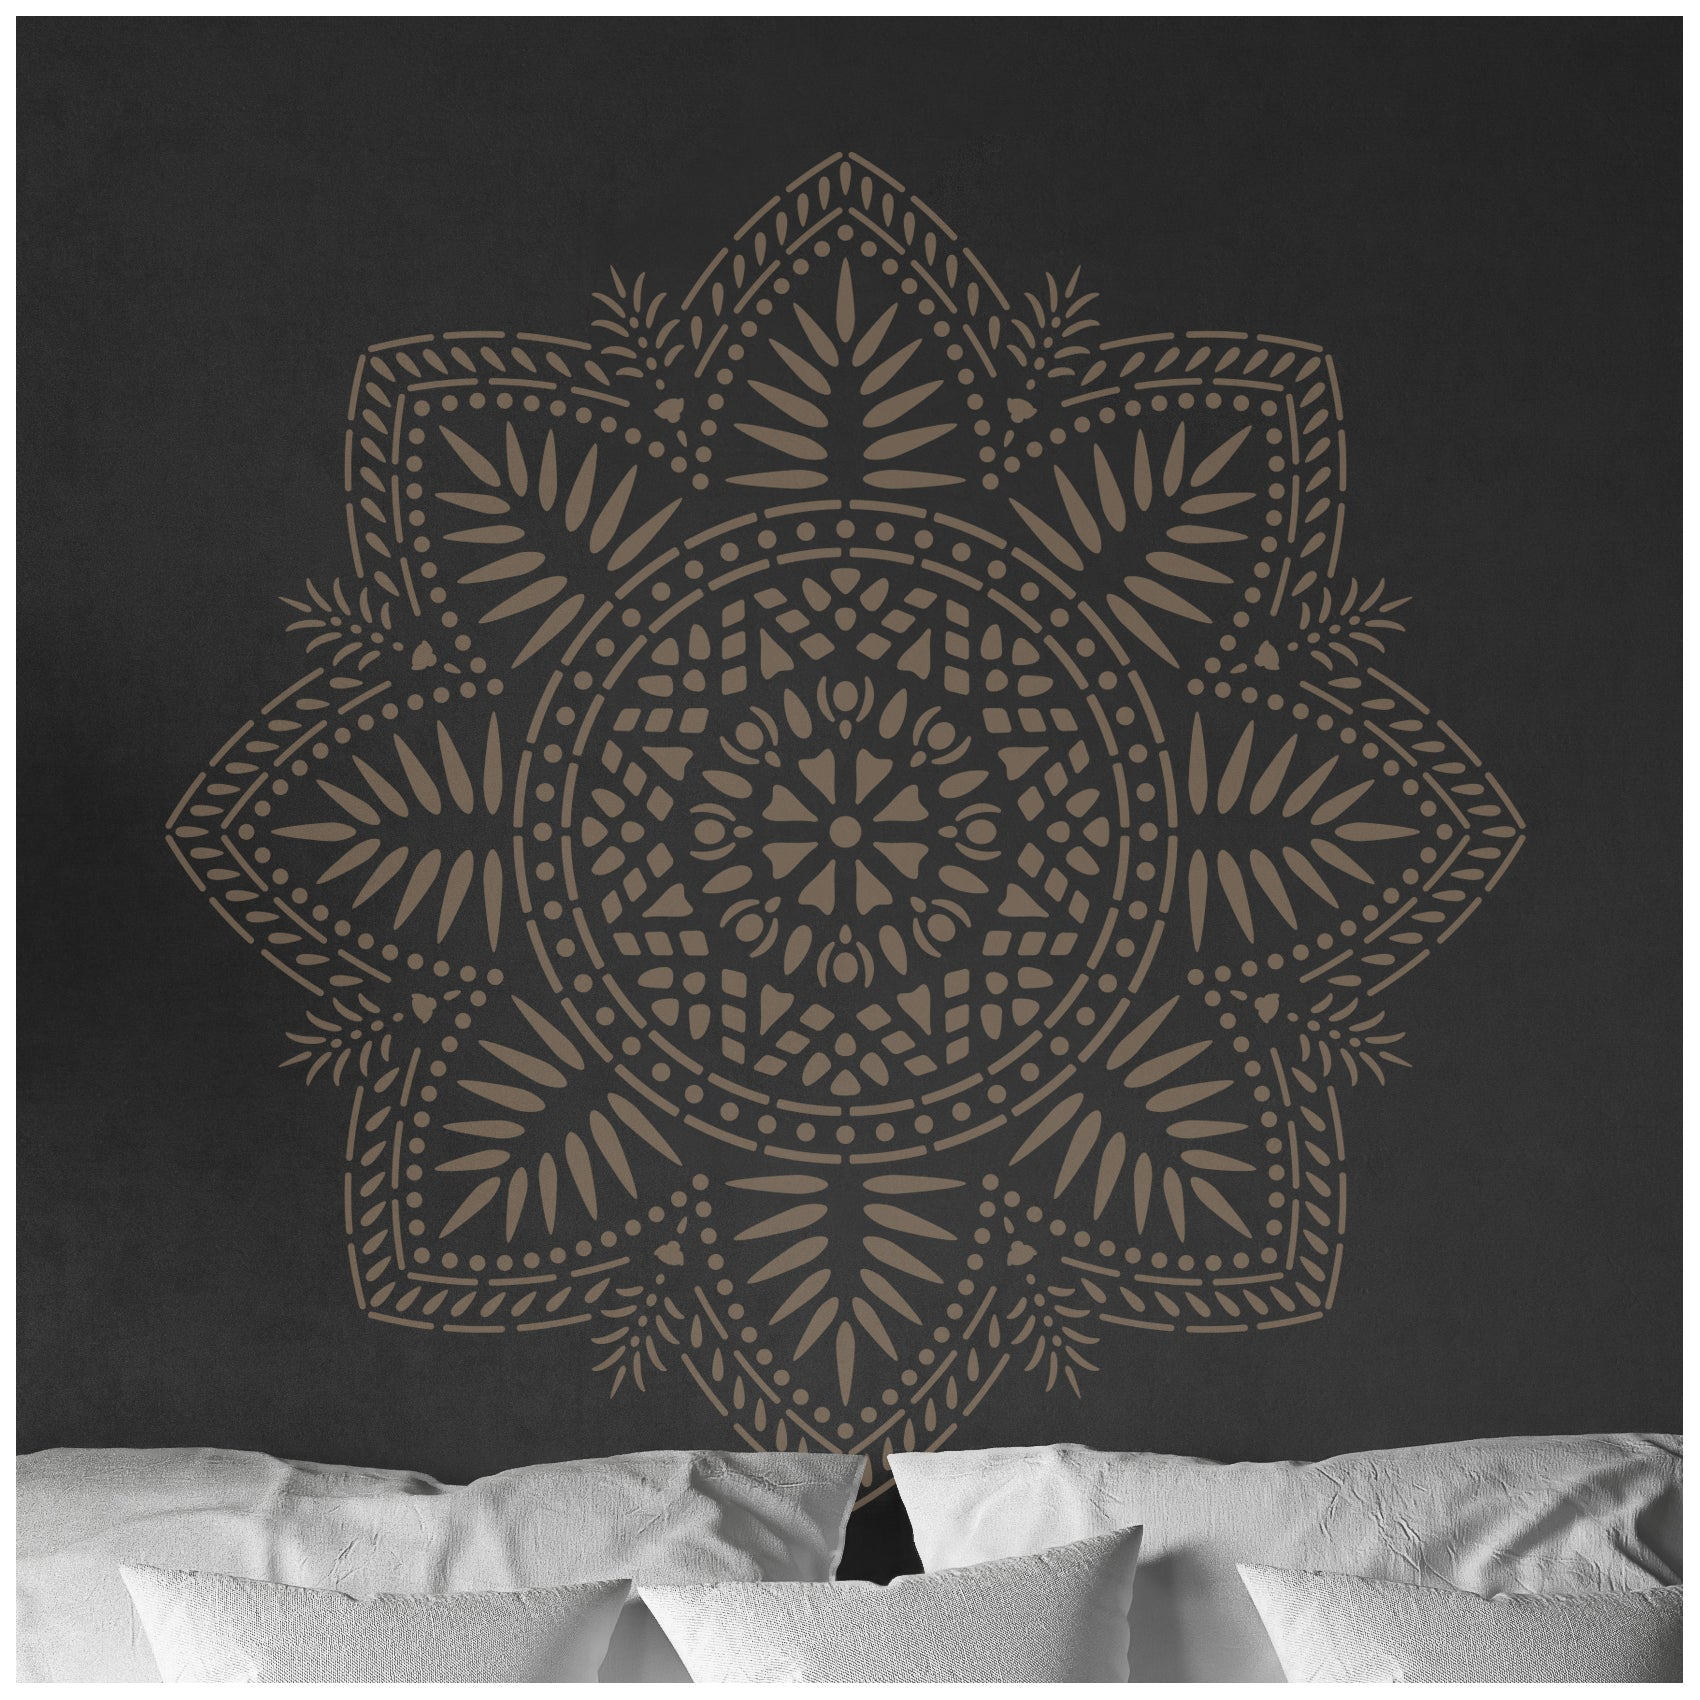 CraftStar Bliss Mandala Stencil on Bedroom Wall